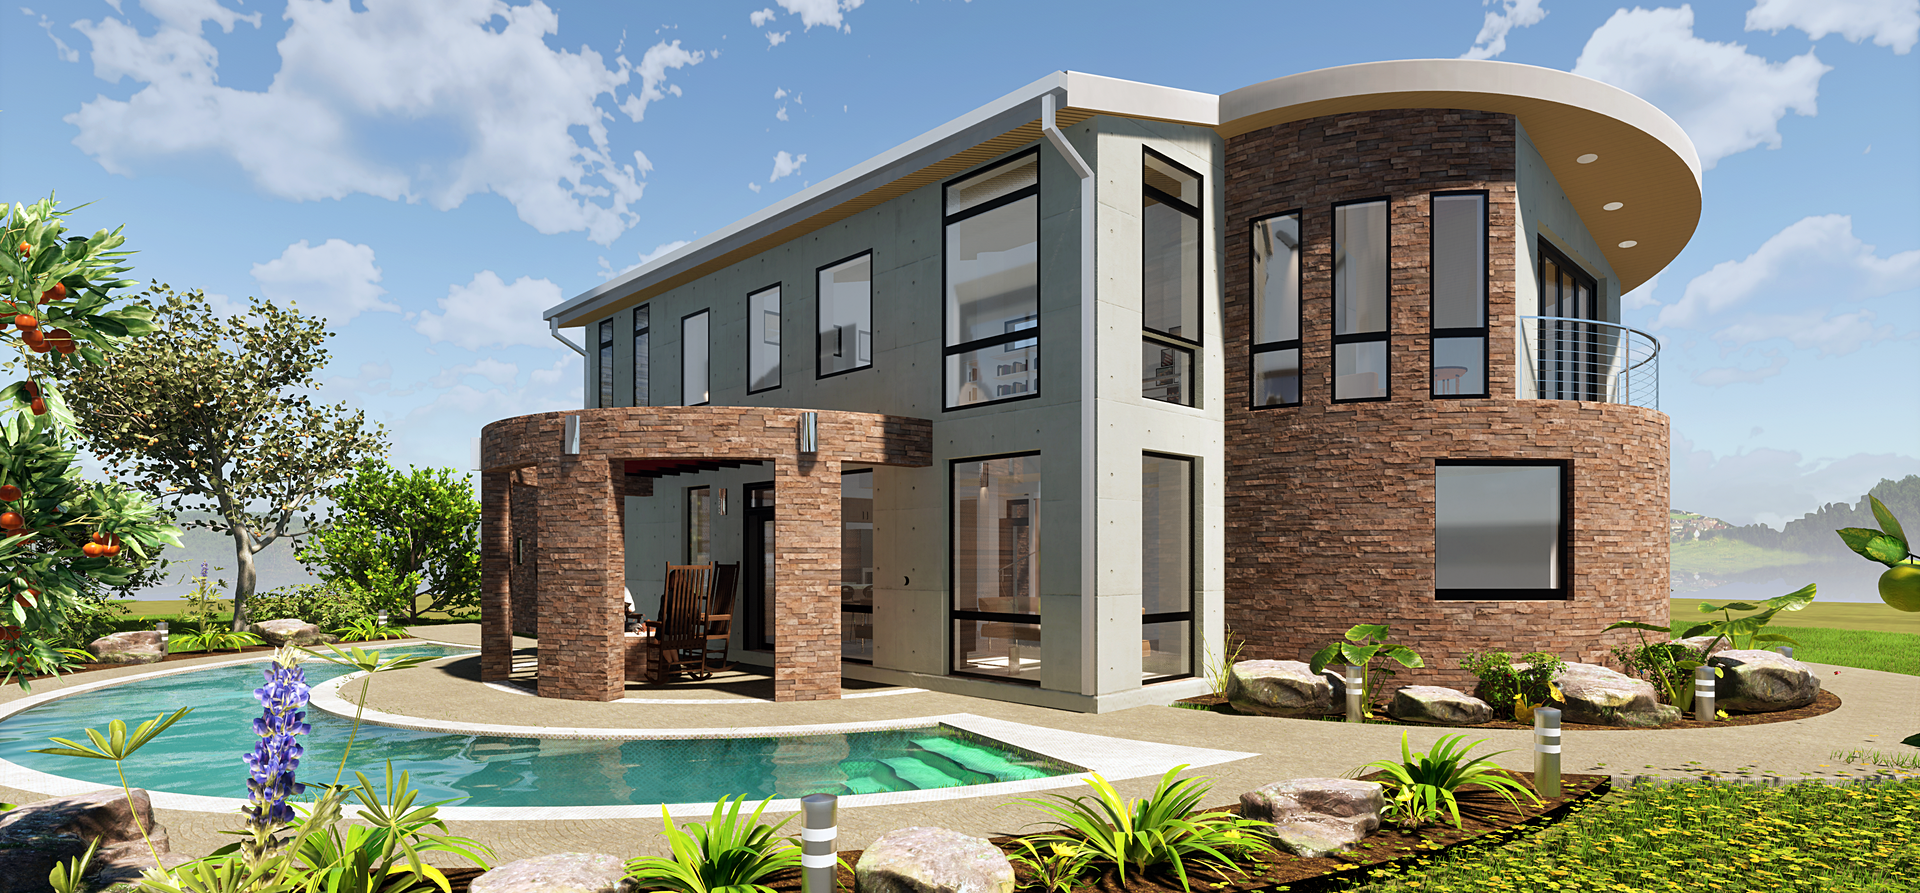 In need of rendering service? Contact us today!